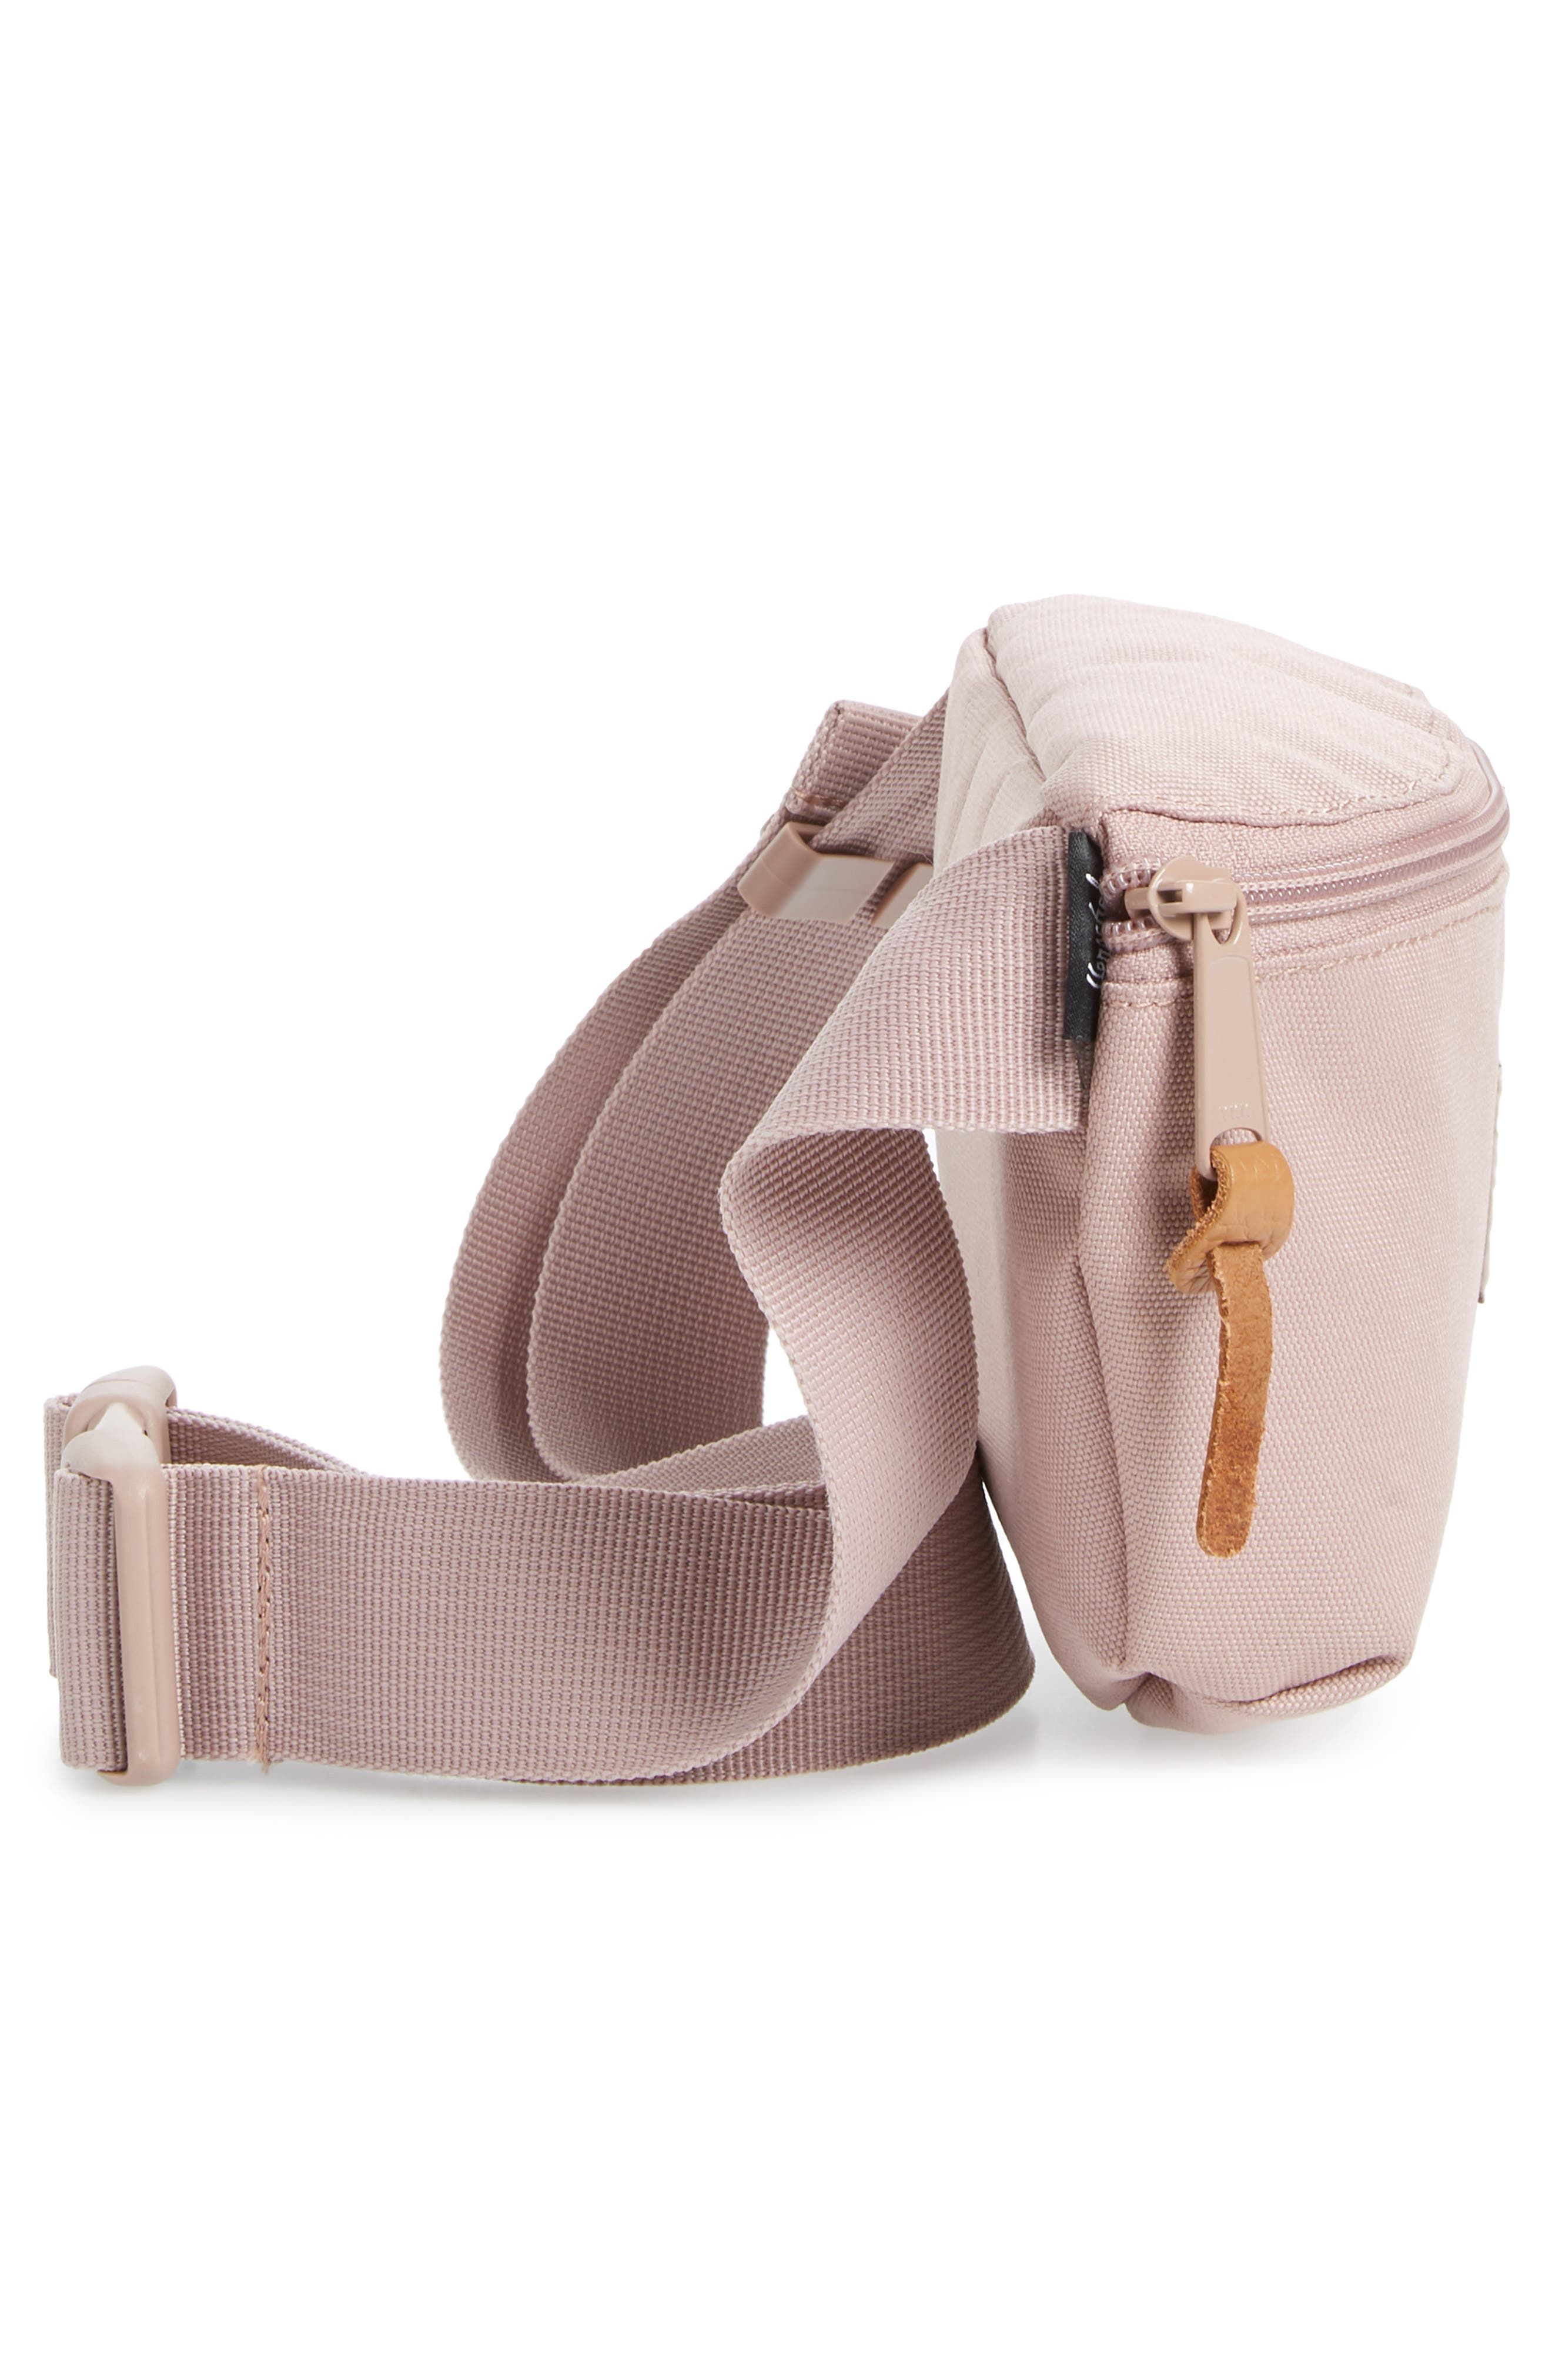 Fourteen Belt Bag,                             Alternate thumbnail 6, color,                             ASH ROSE